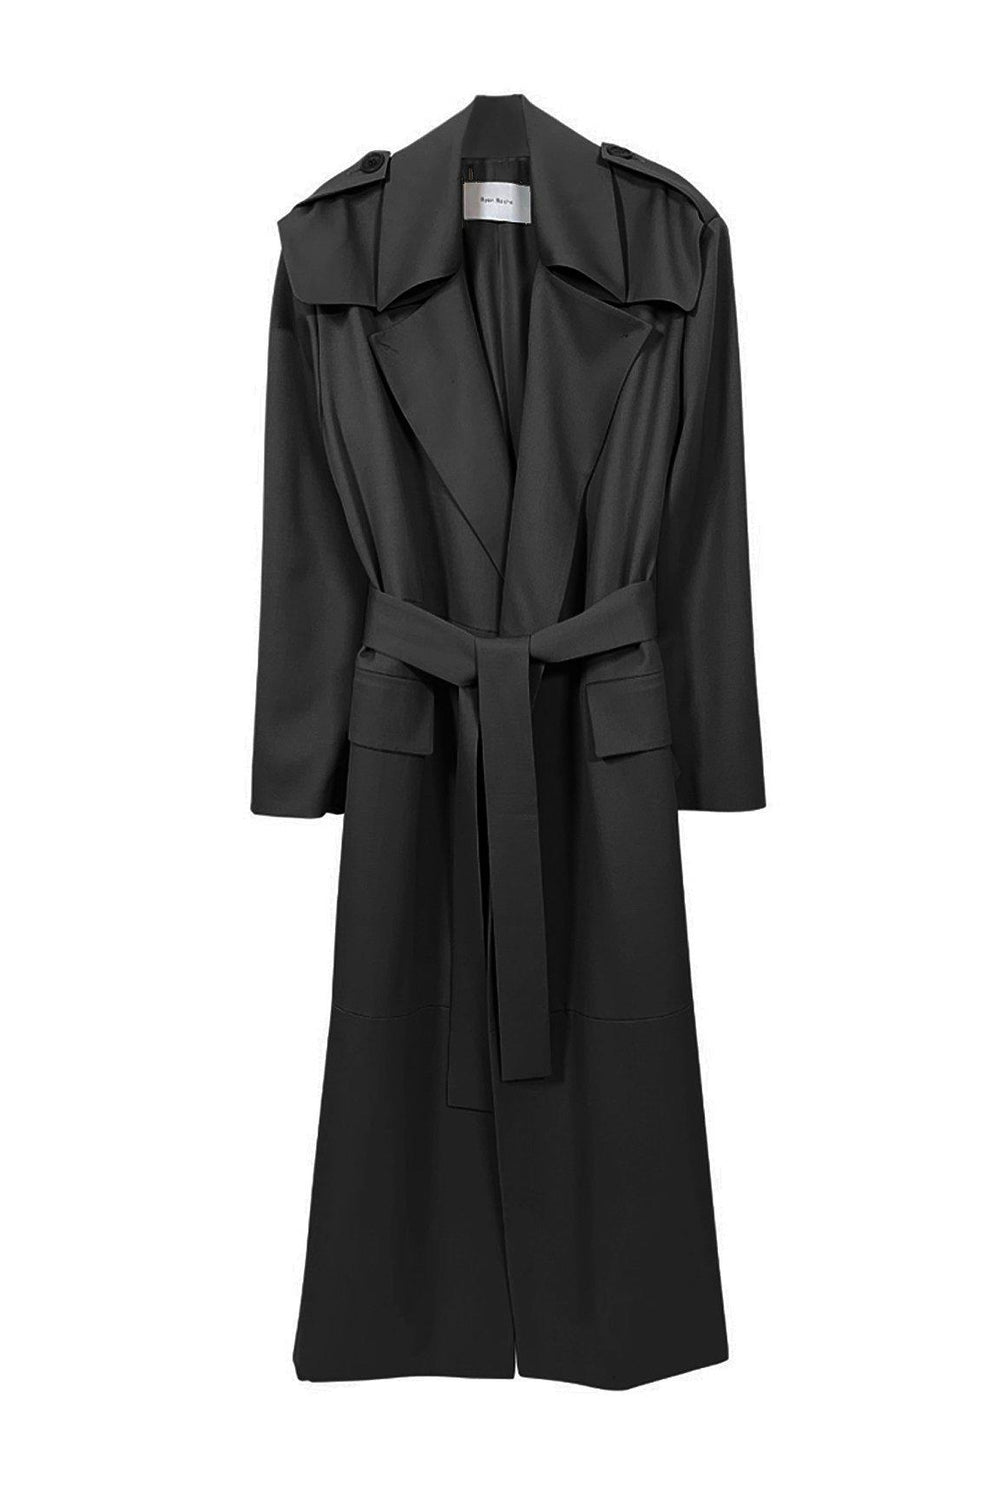 RYAN ROCHE Wool gabardine trench coat